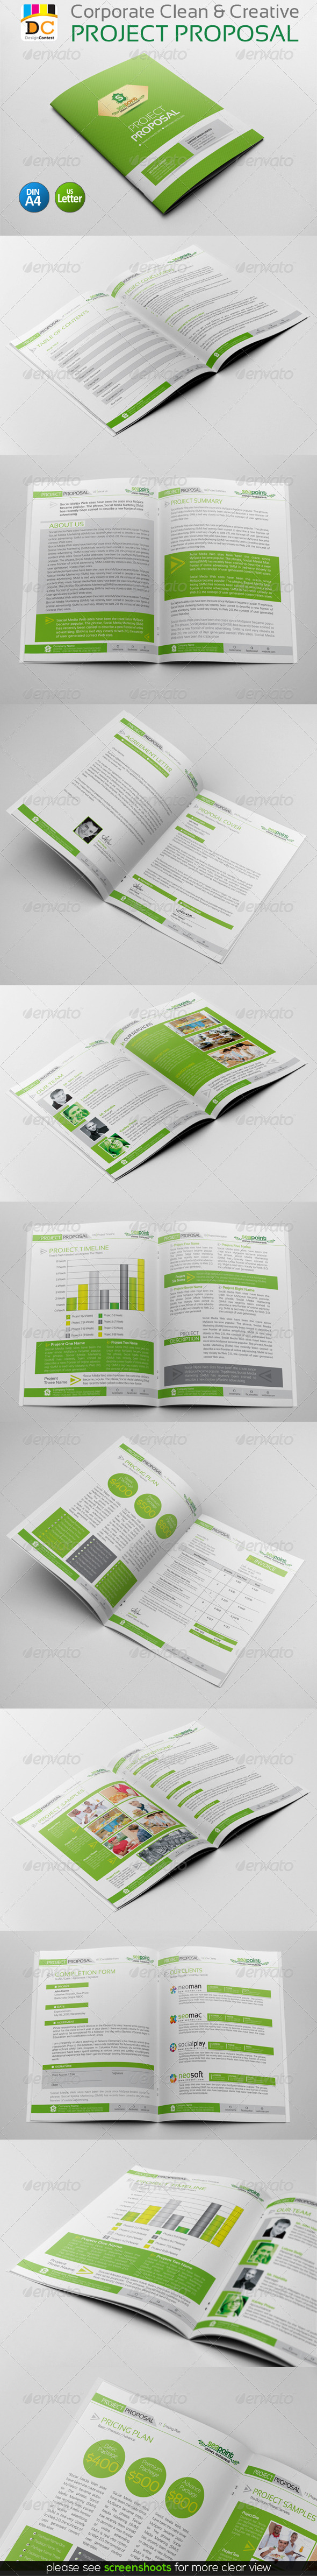 GraphicRiver Corporate Creative Clean Project Proposal 4798269